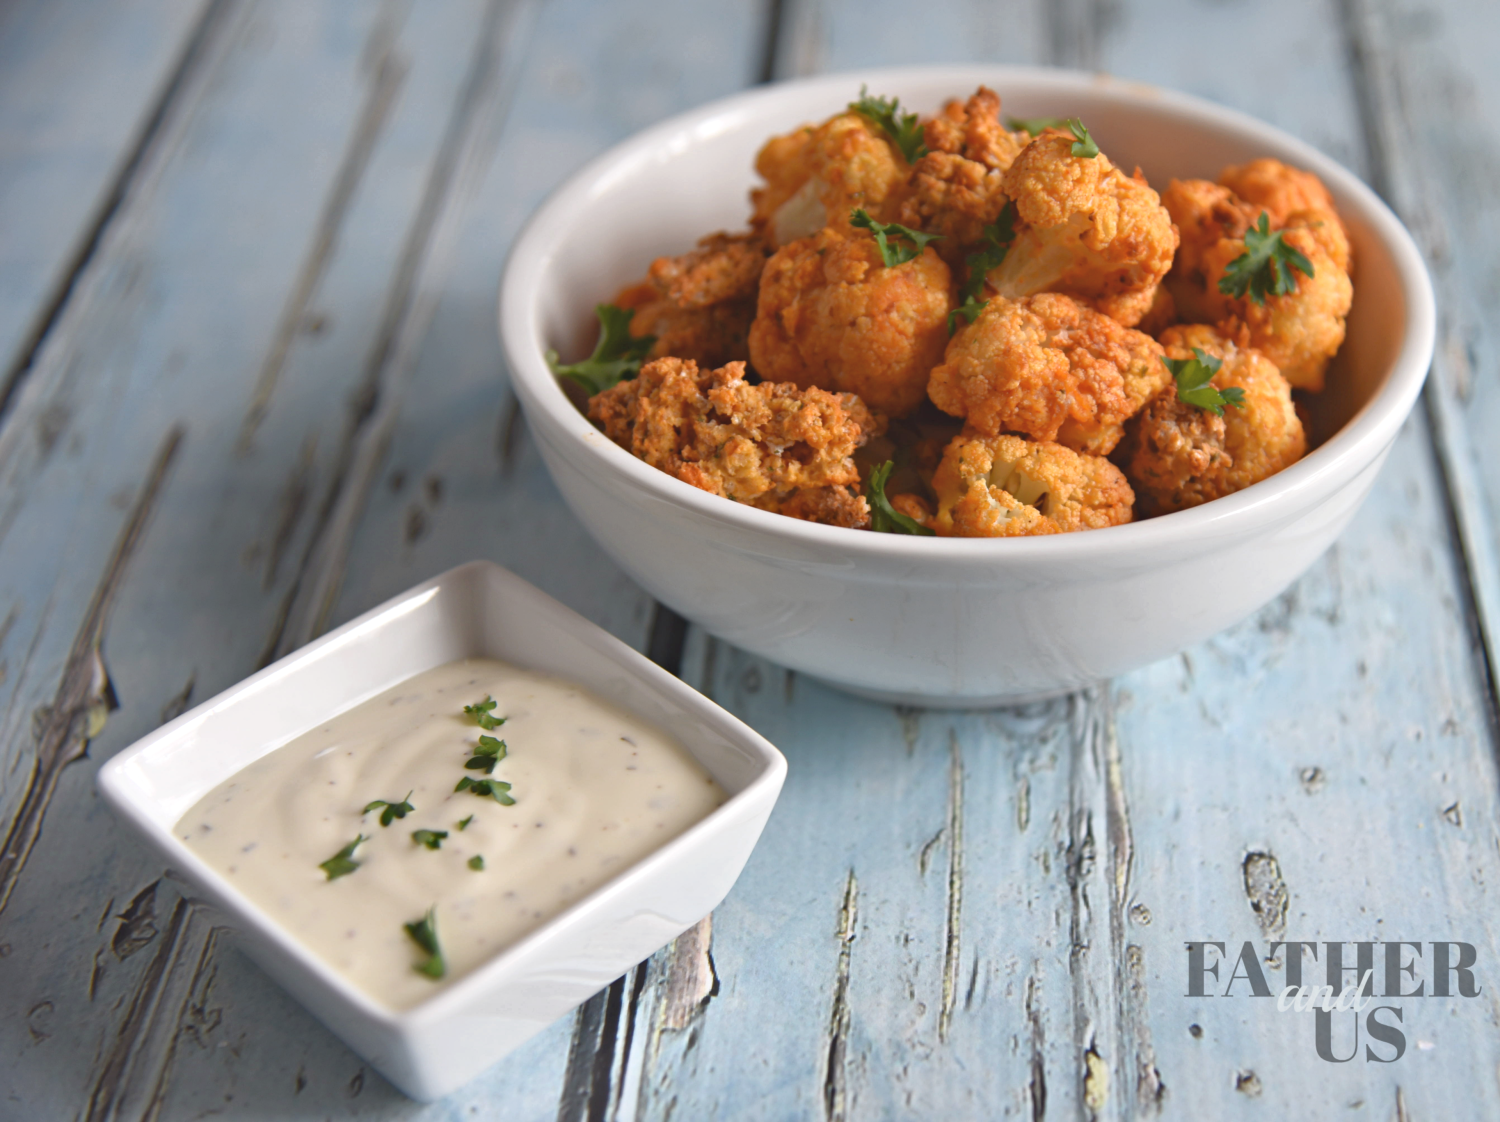 Cauliflower Buffalo Recipe is best served with Ranch dressing.